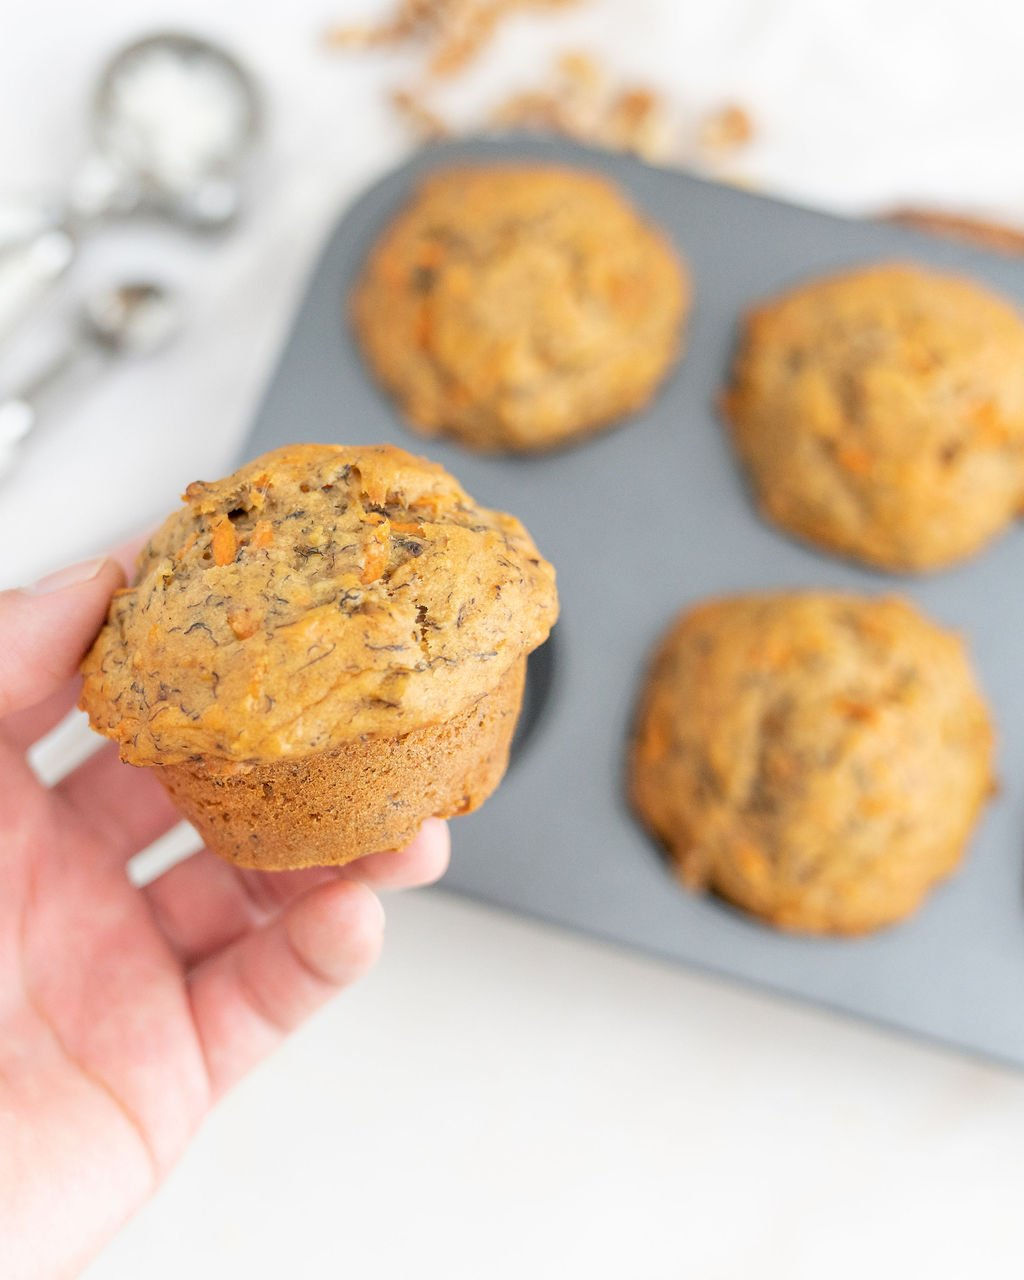 carrot cake muffins held in hand.